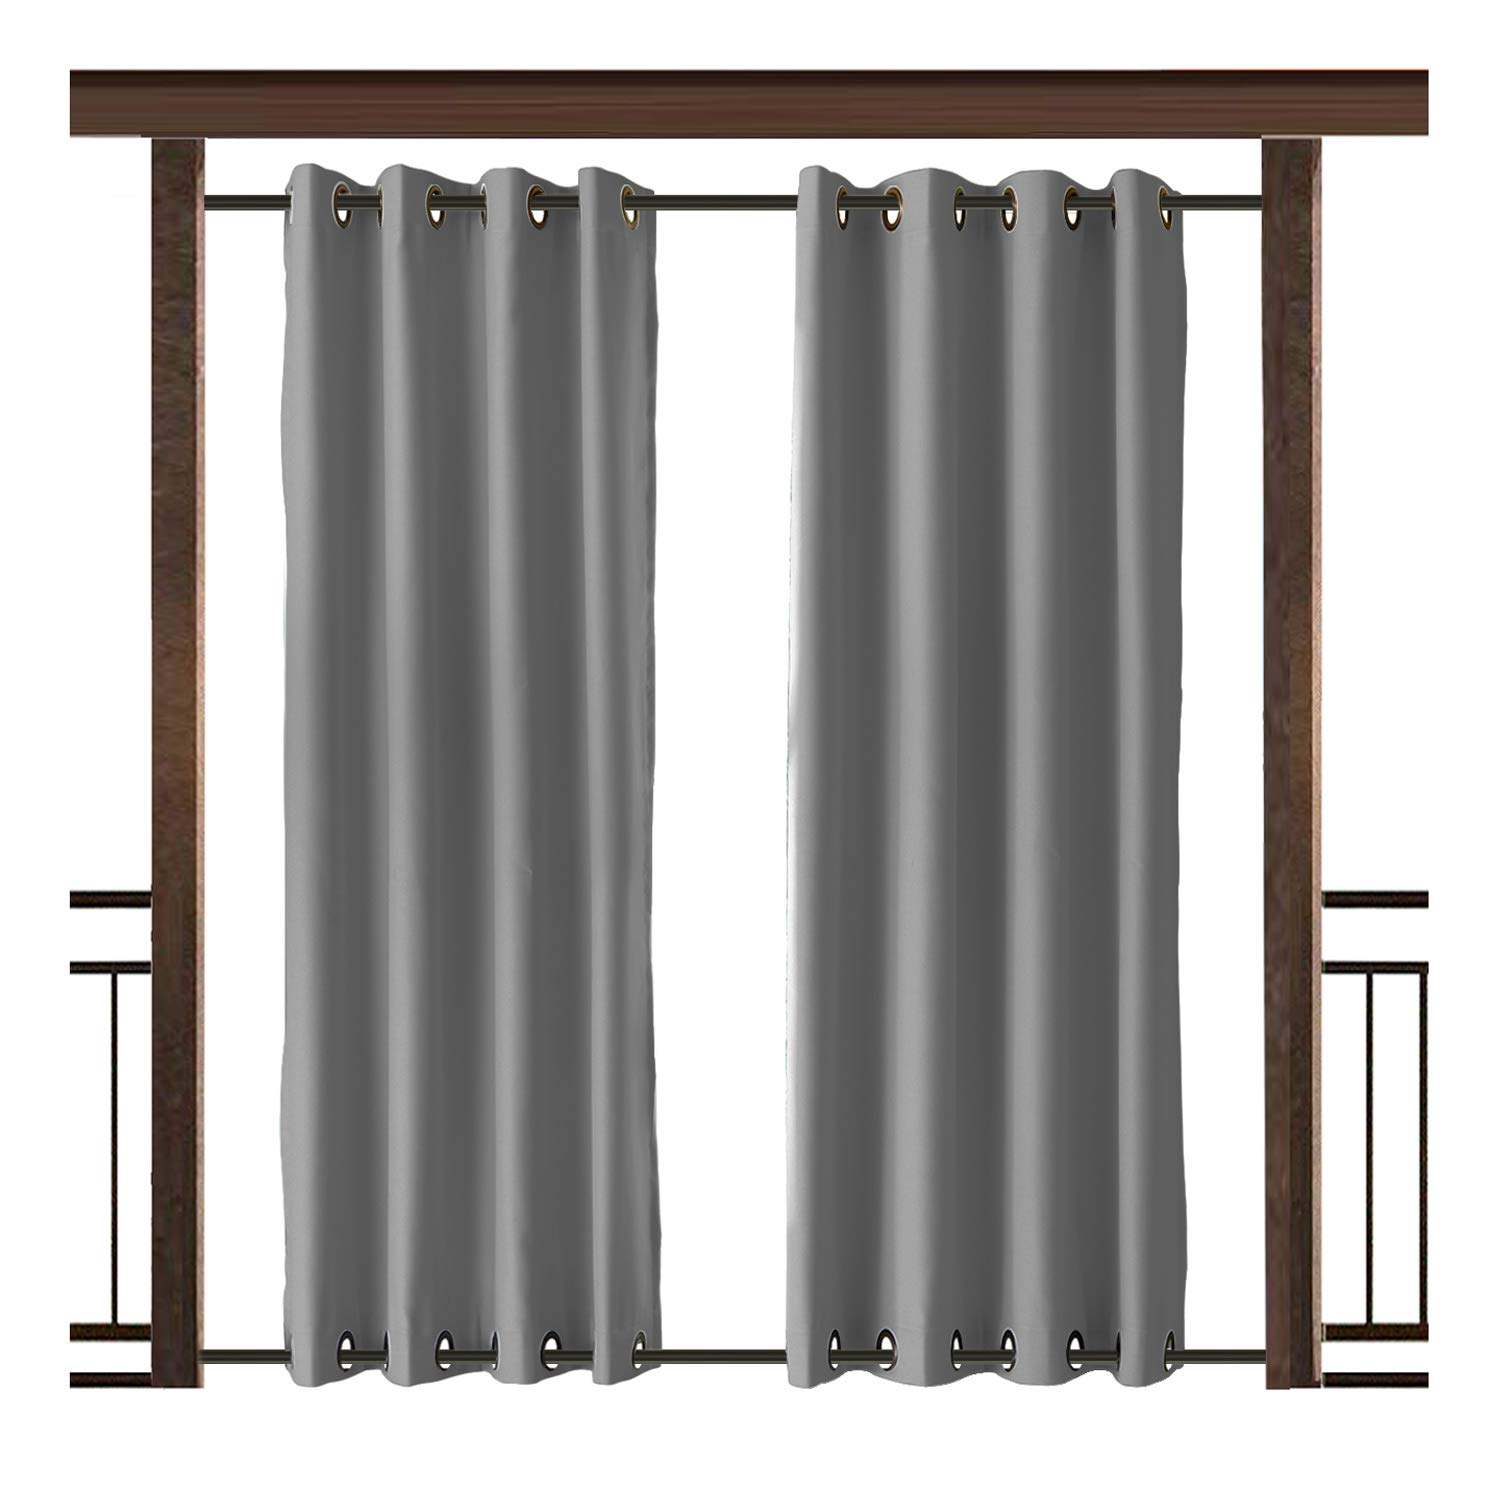 TWOPAGES Outdoor Curtain Antique Bronze Grommet Waterproof Drape(Both Top and Bottom) Grey 52'' W x 84'' L For Front Porch, Pergola, Cabana, Covered Patio, Gazebo, Dock, and Beach Home (1 Panel).